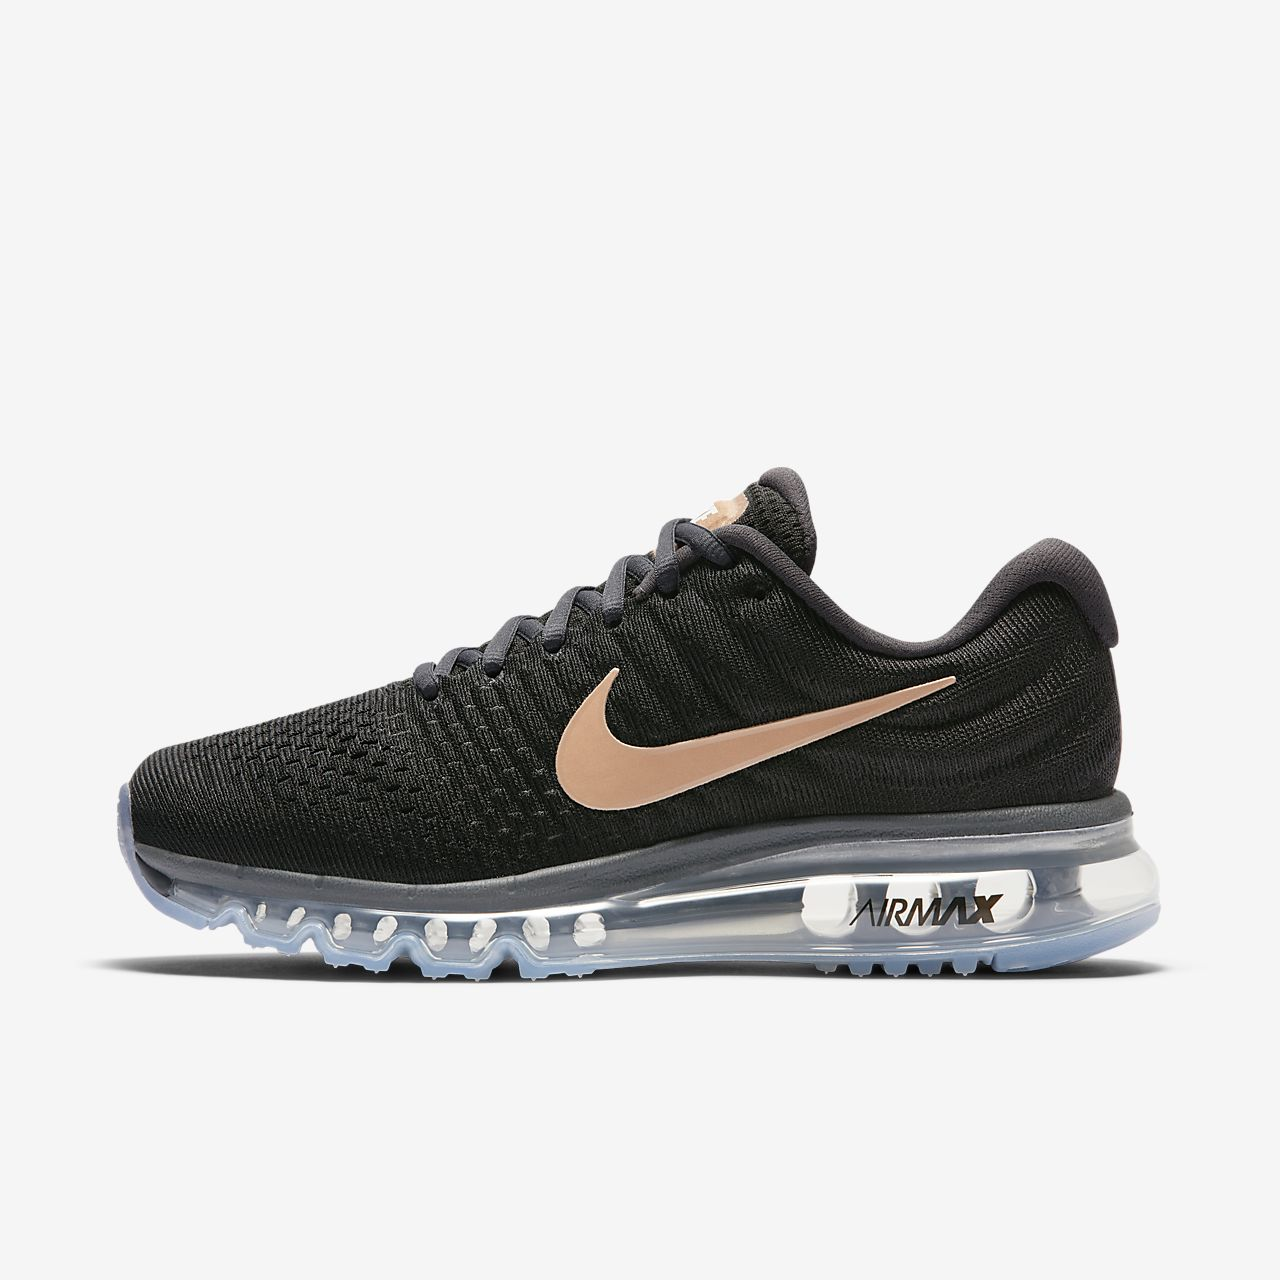 WMNS NIKE AIR MAX 2017 BLACK DARK GREY PARTICLE PINK BRONZE 849560-008 WOMENS